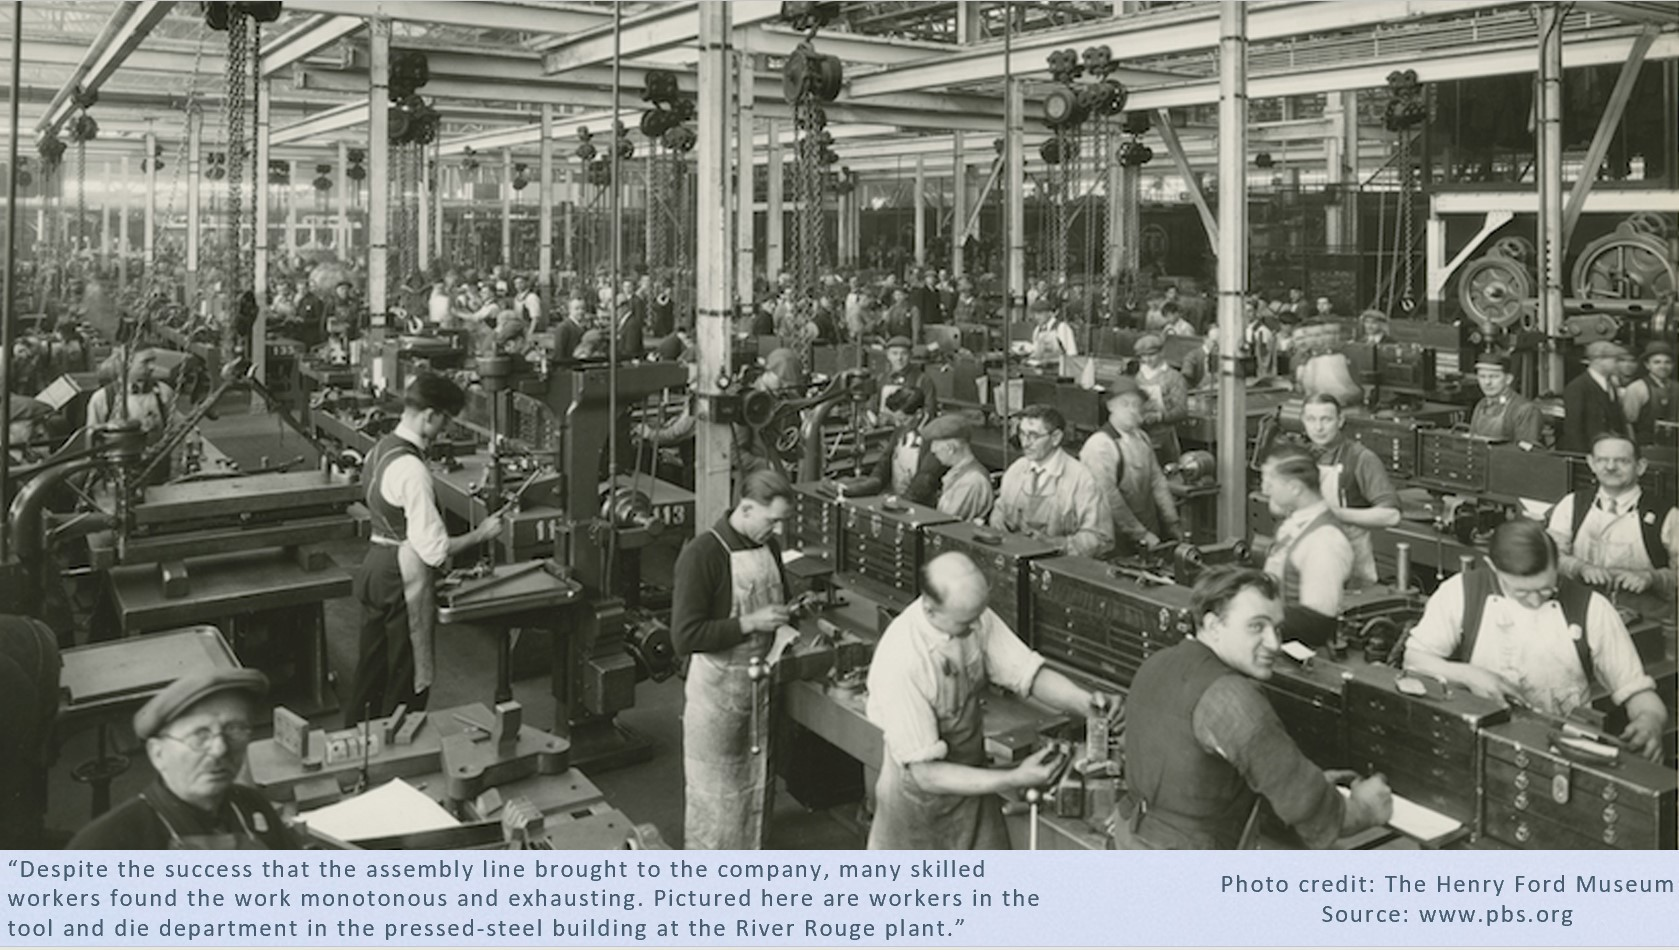 Industrial Work Henry Ford Museum Pic